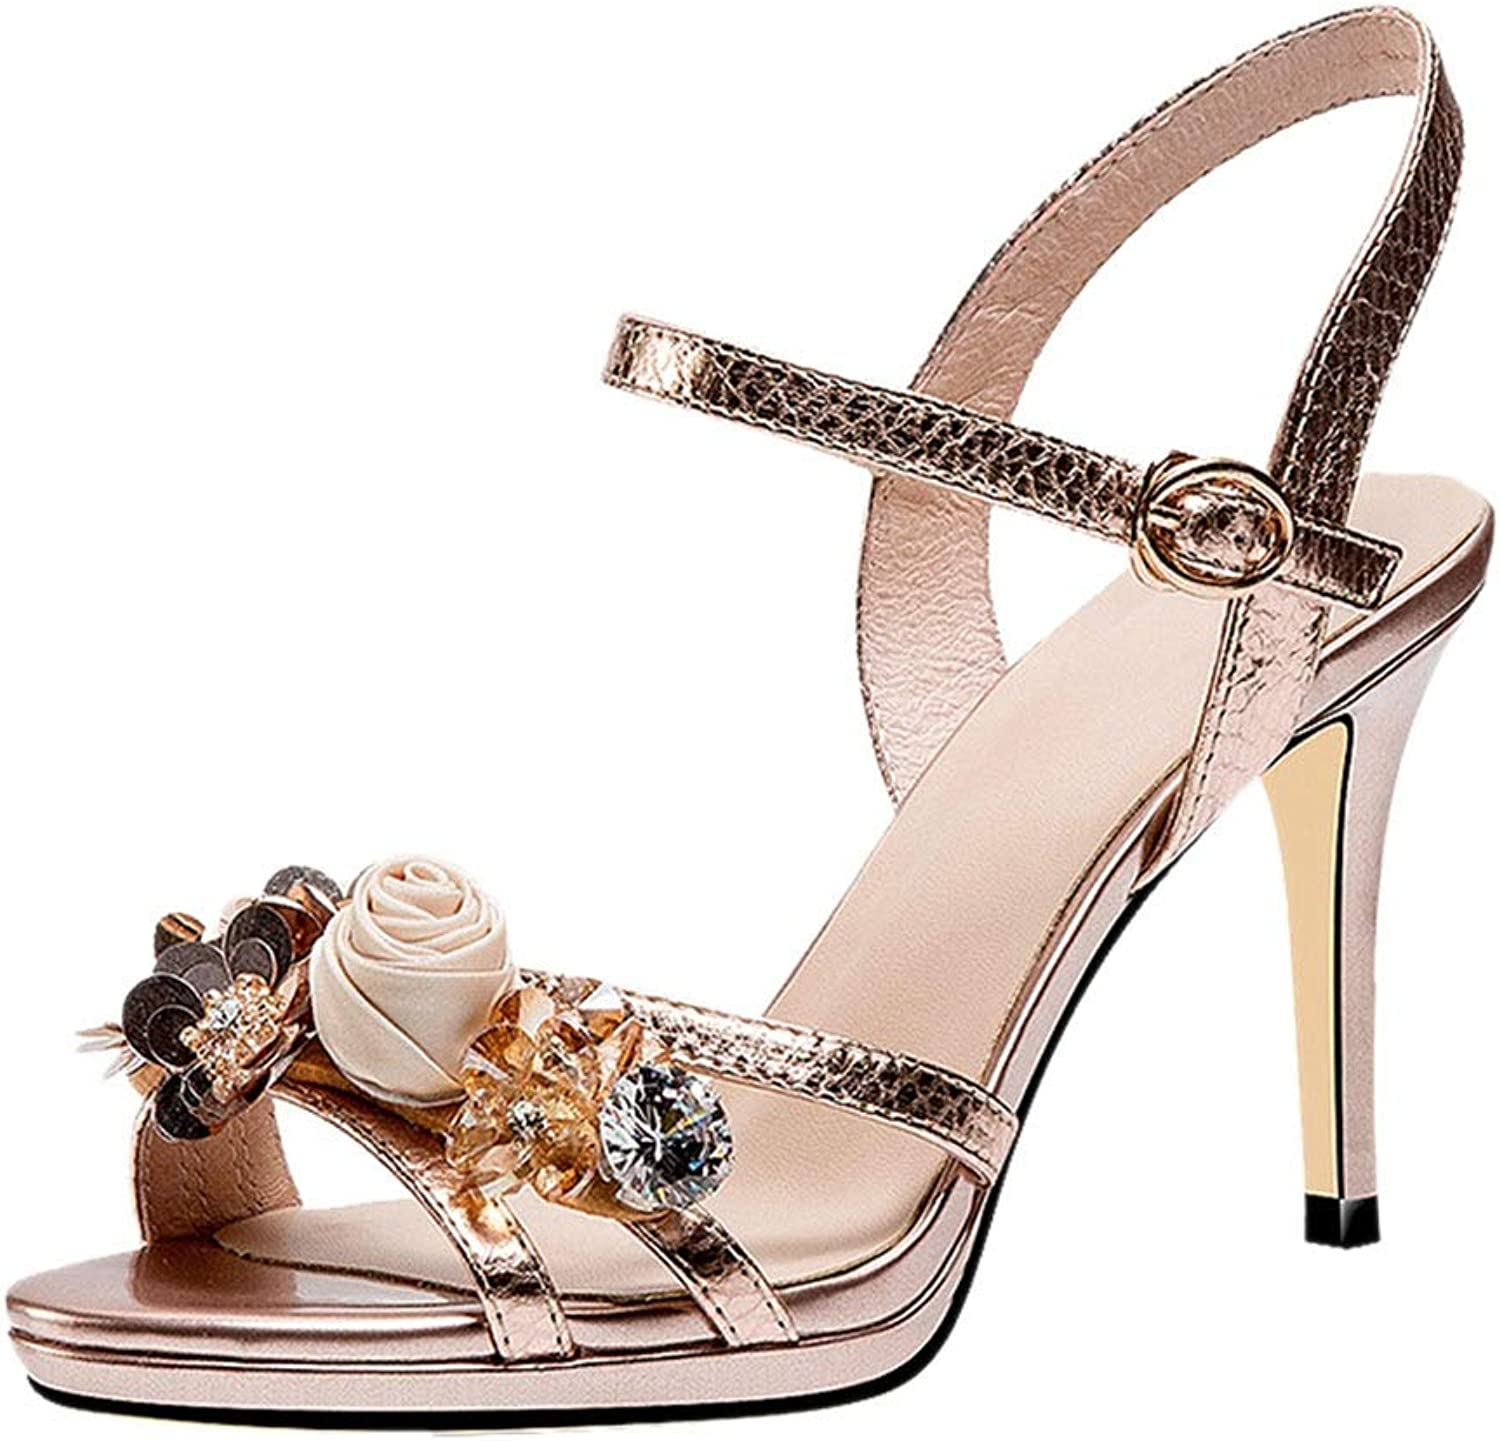 Sandals Sandals Summer Leather High Heel Sandals with A Flower Stiletto Open Toe Rhinestone Sandals Dating shoes, High Heels 8.5cm (color   gold, Size   37)